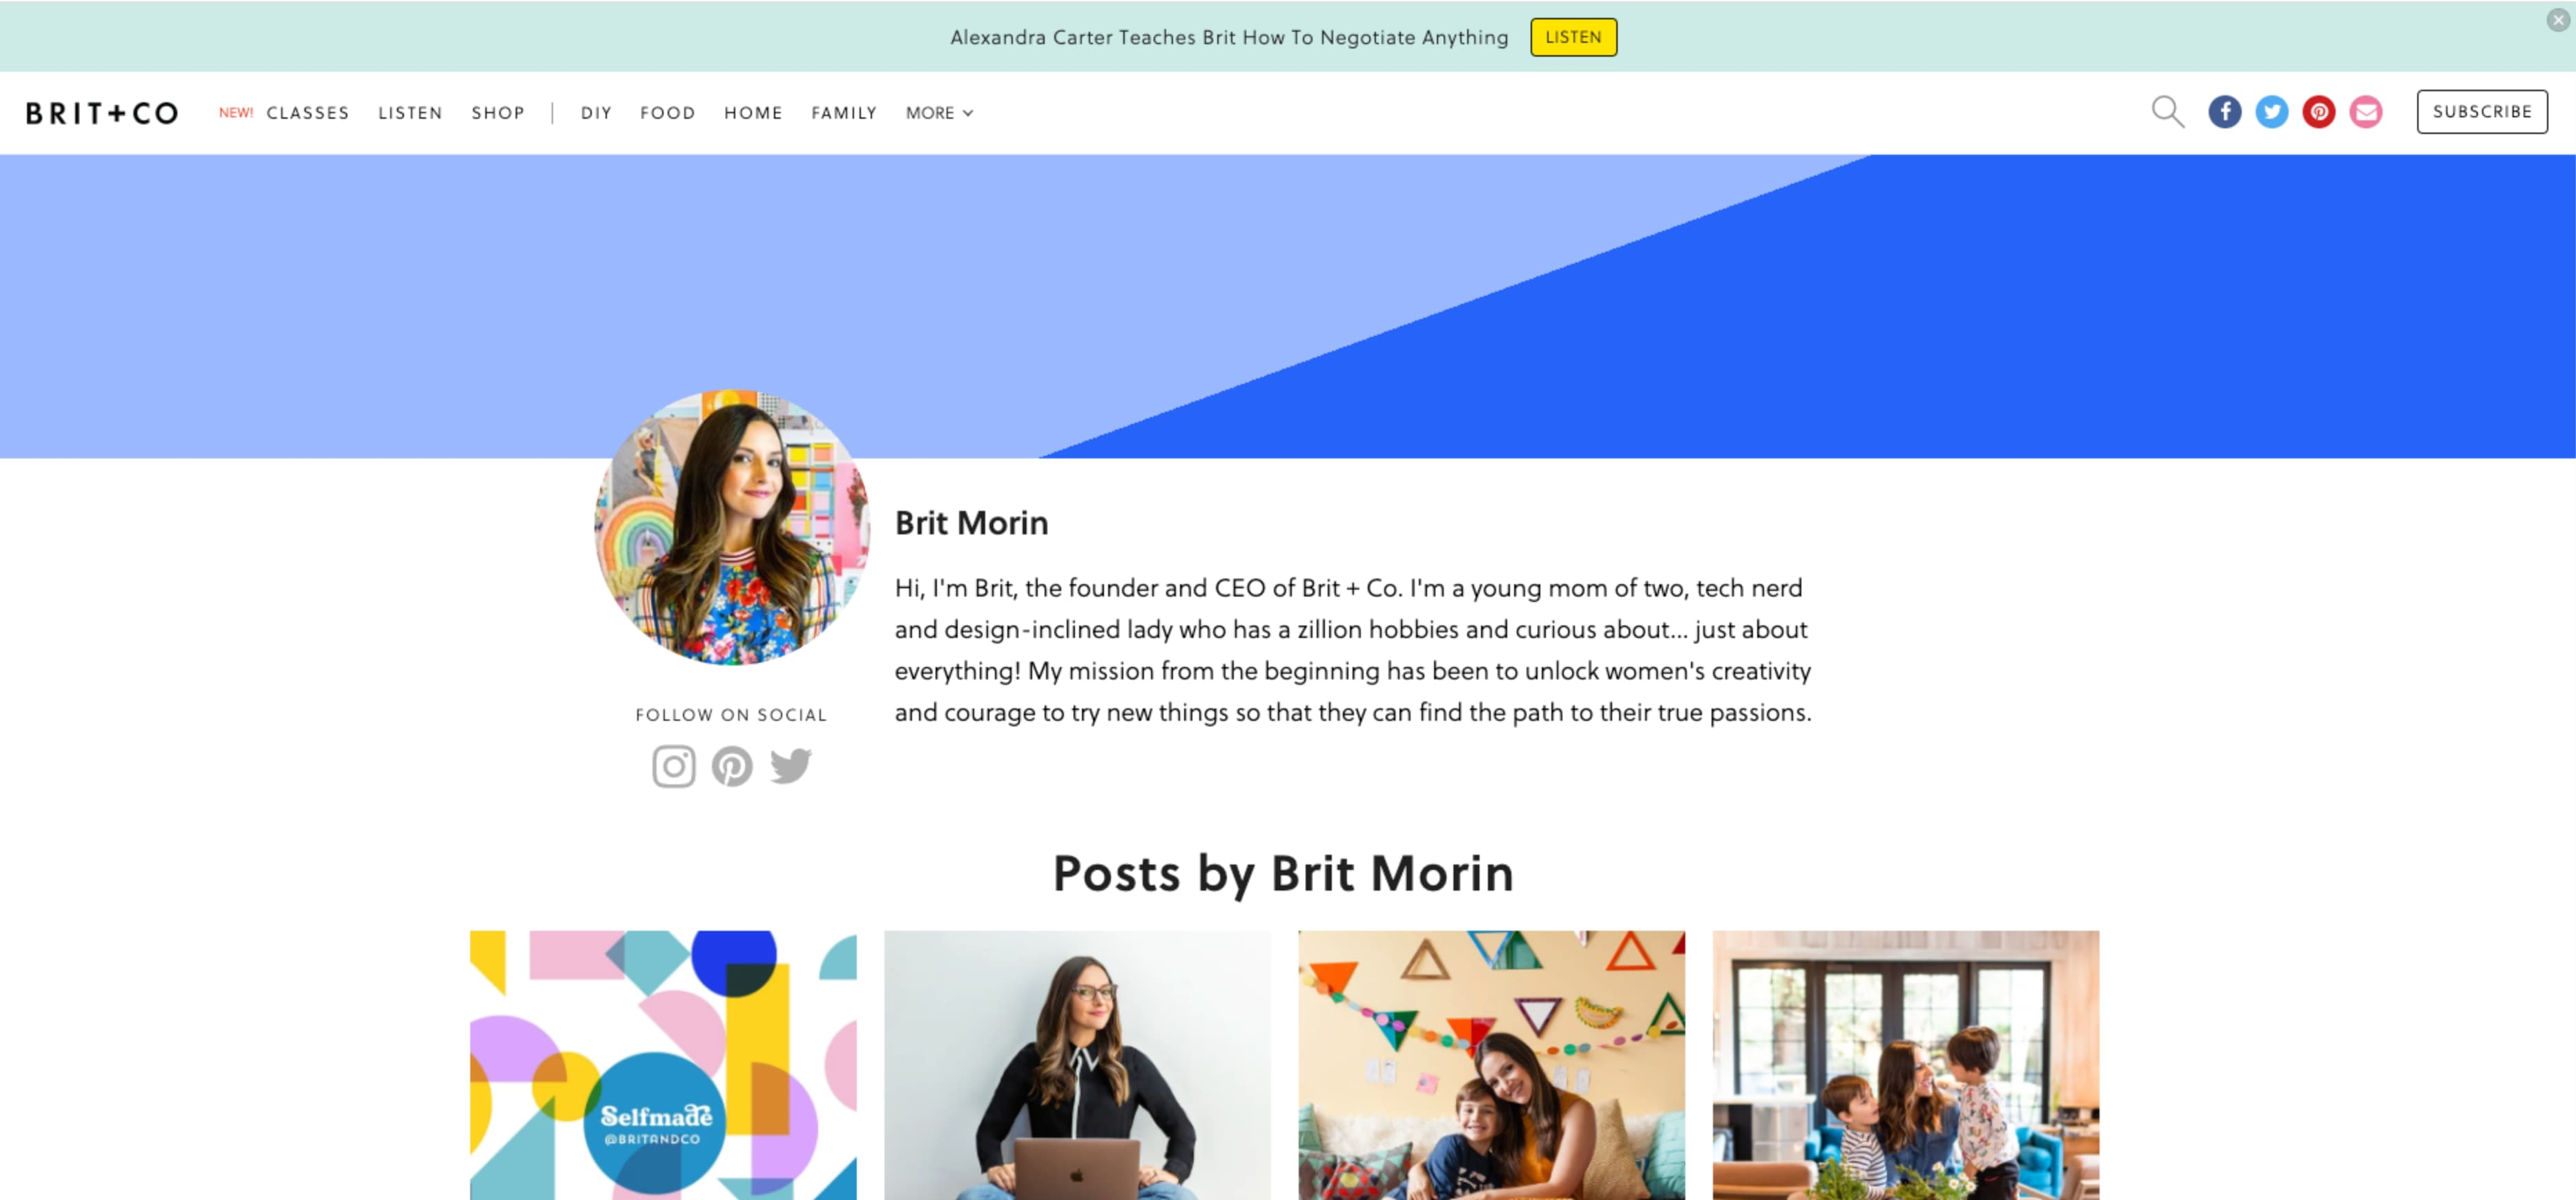 Brit & Co blogs layout is great example of good design. It uses a simple grid layout, relevant tags and titles, and vivid imagery.